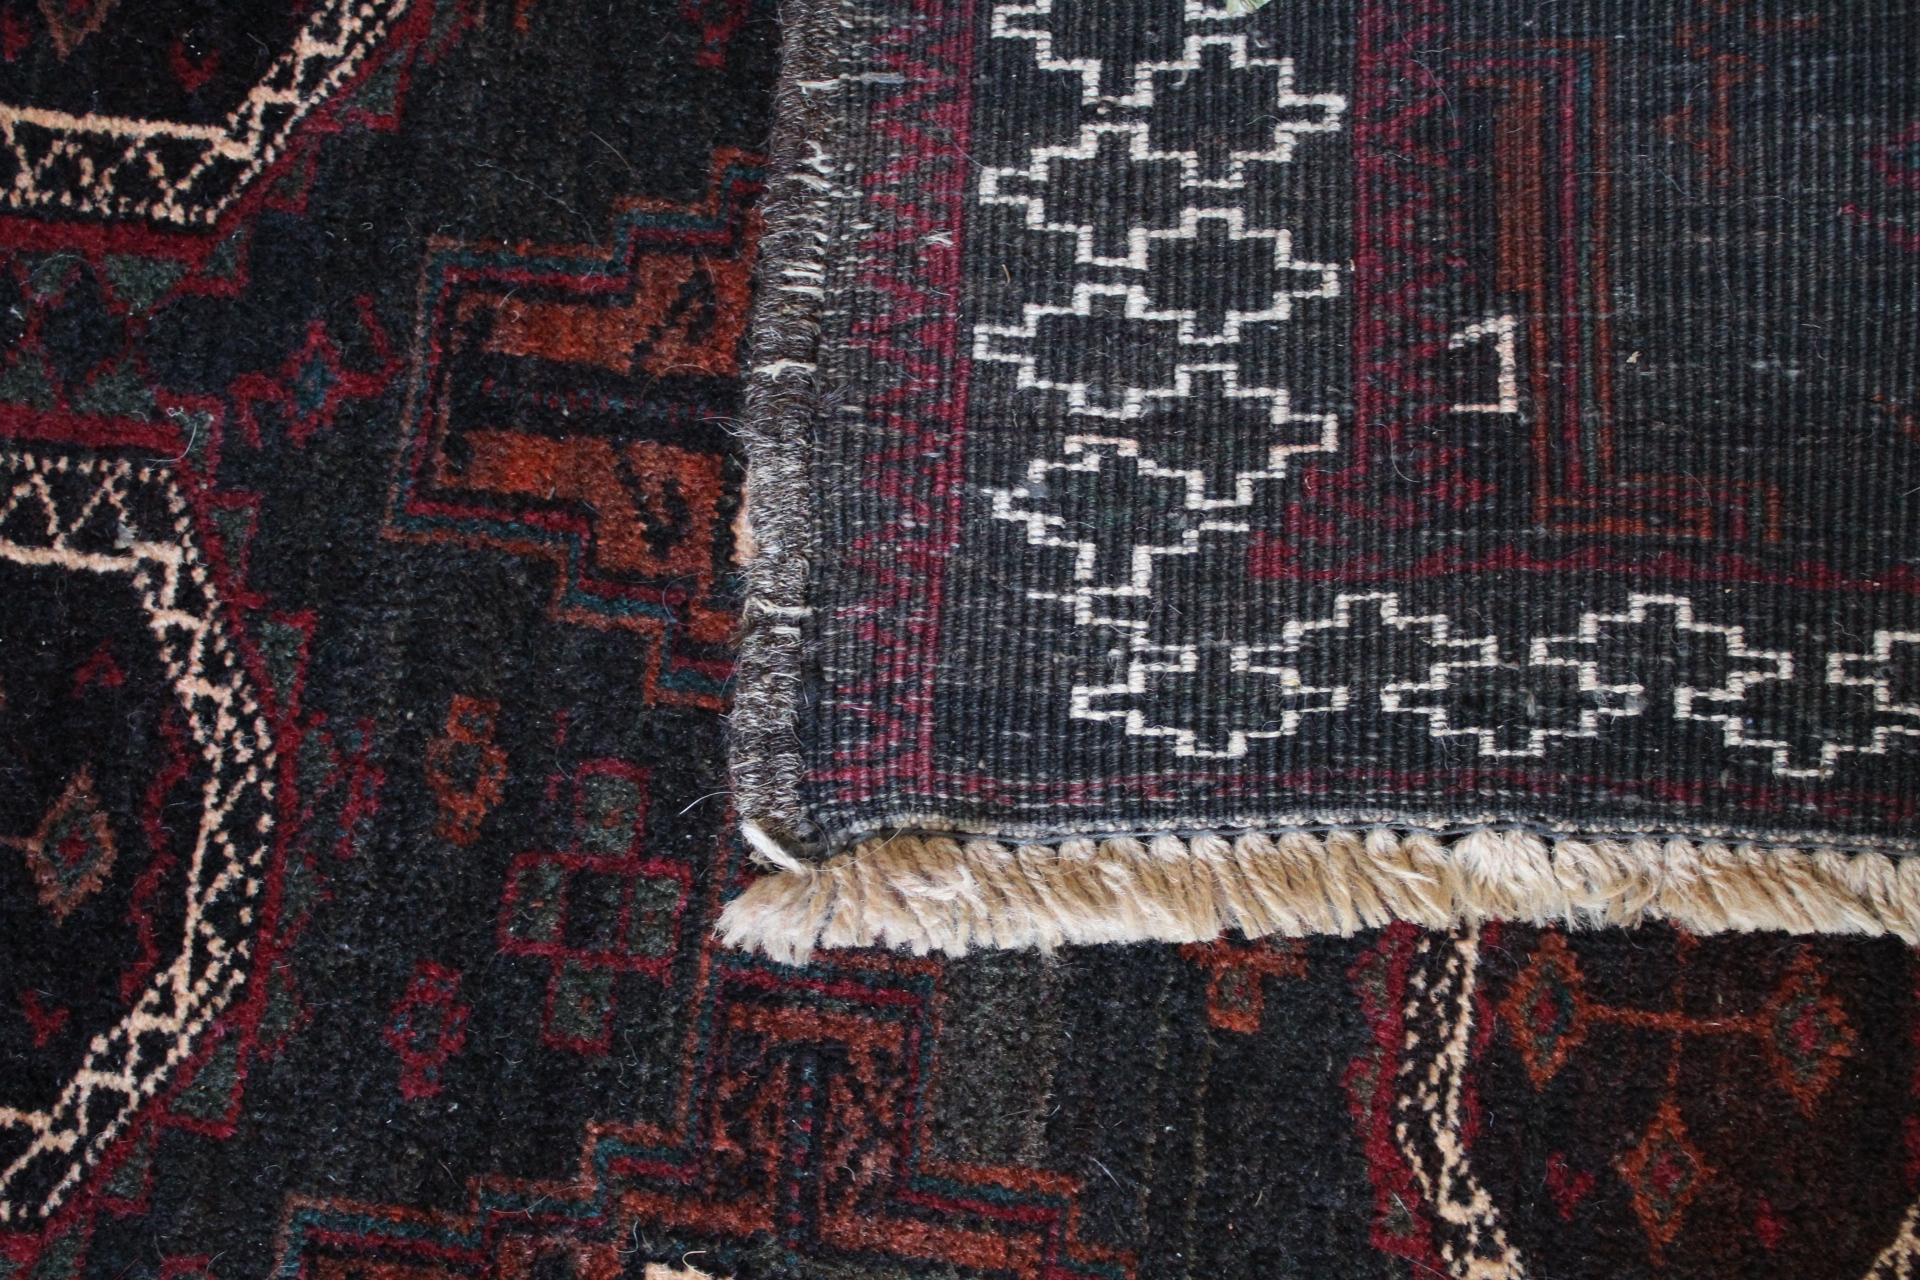 Handmade rug where the fringe is part of the rugs foundation.